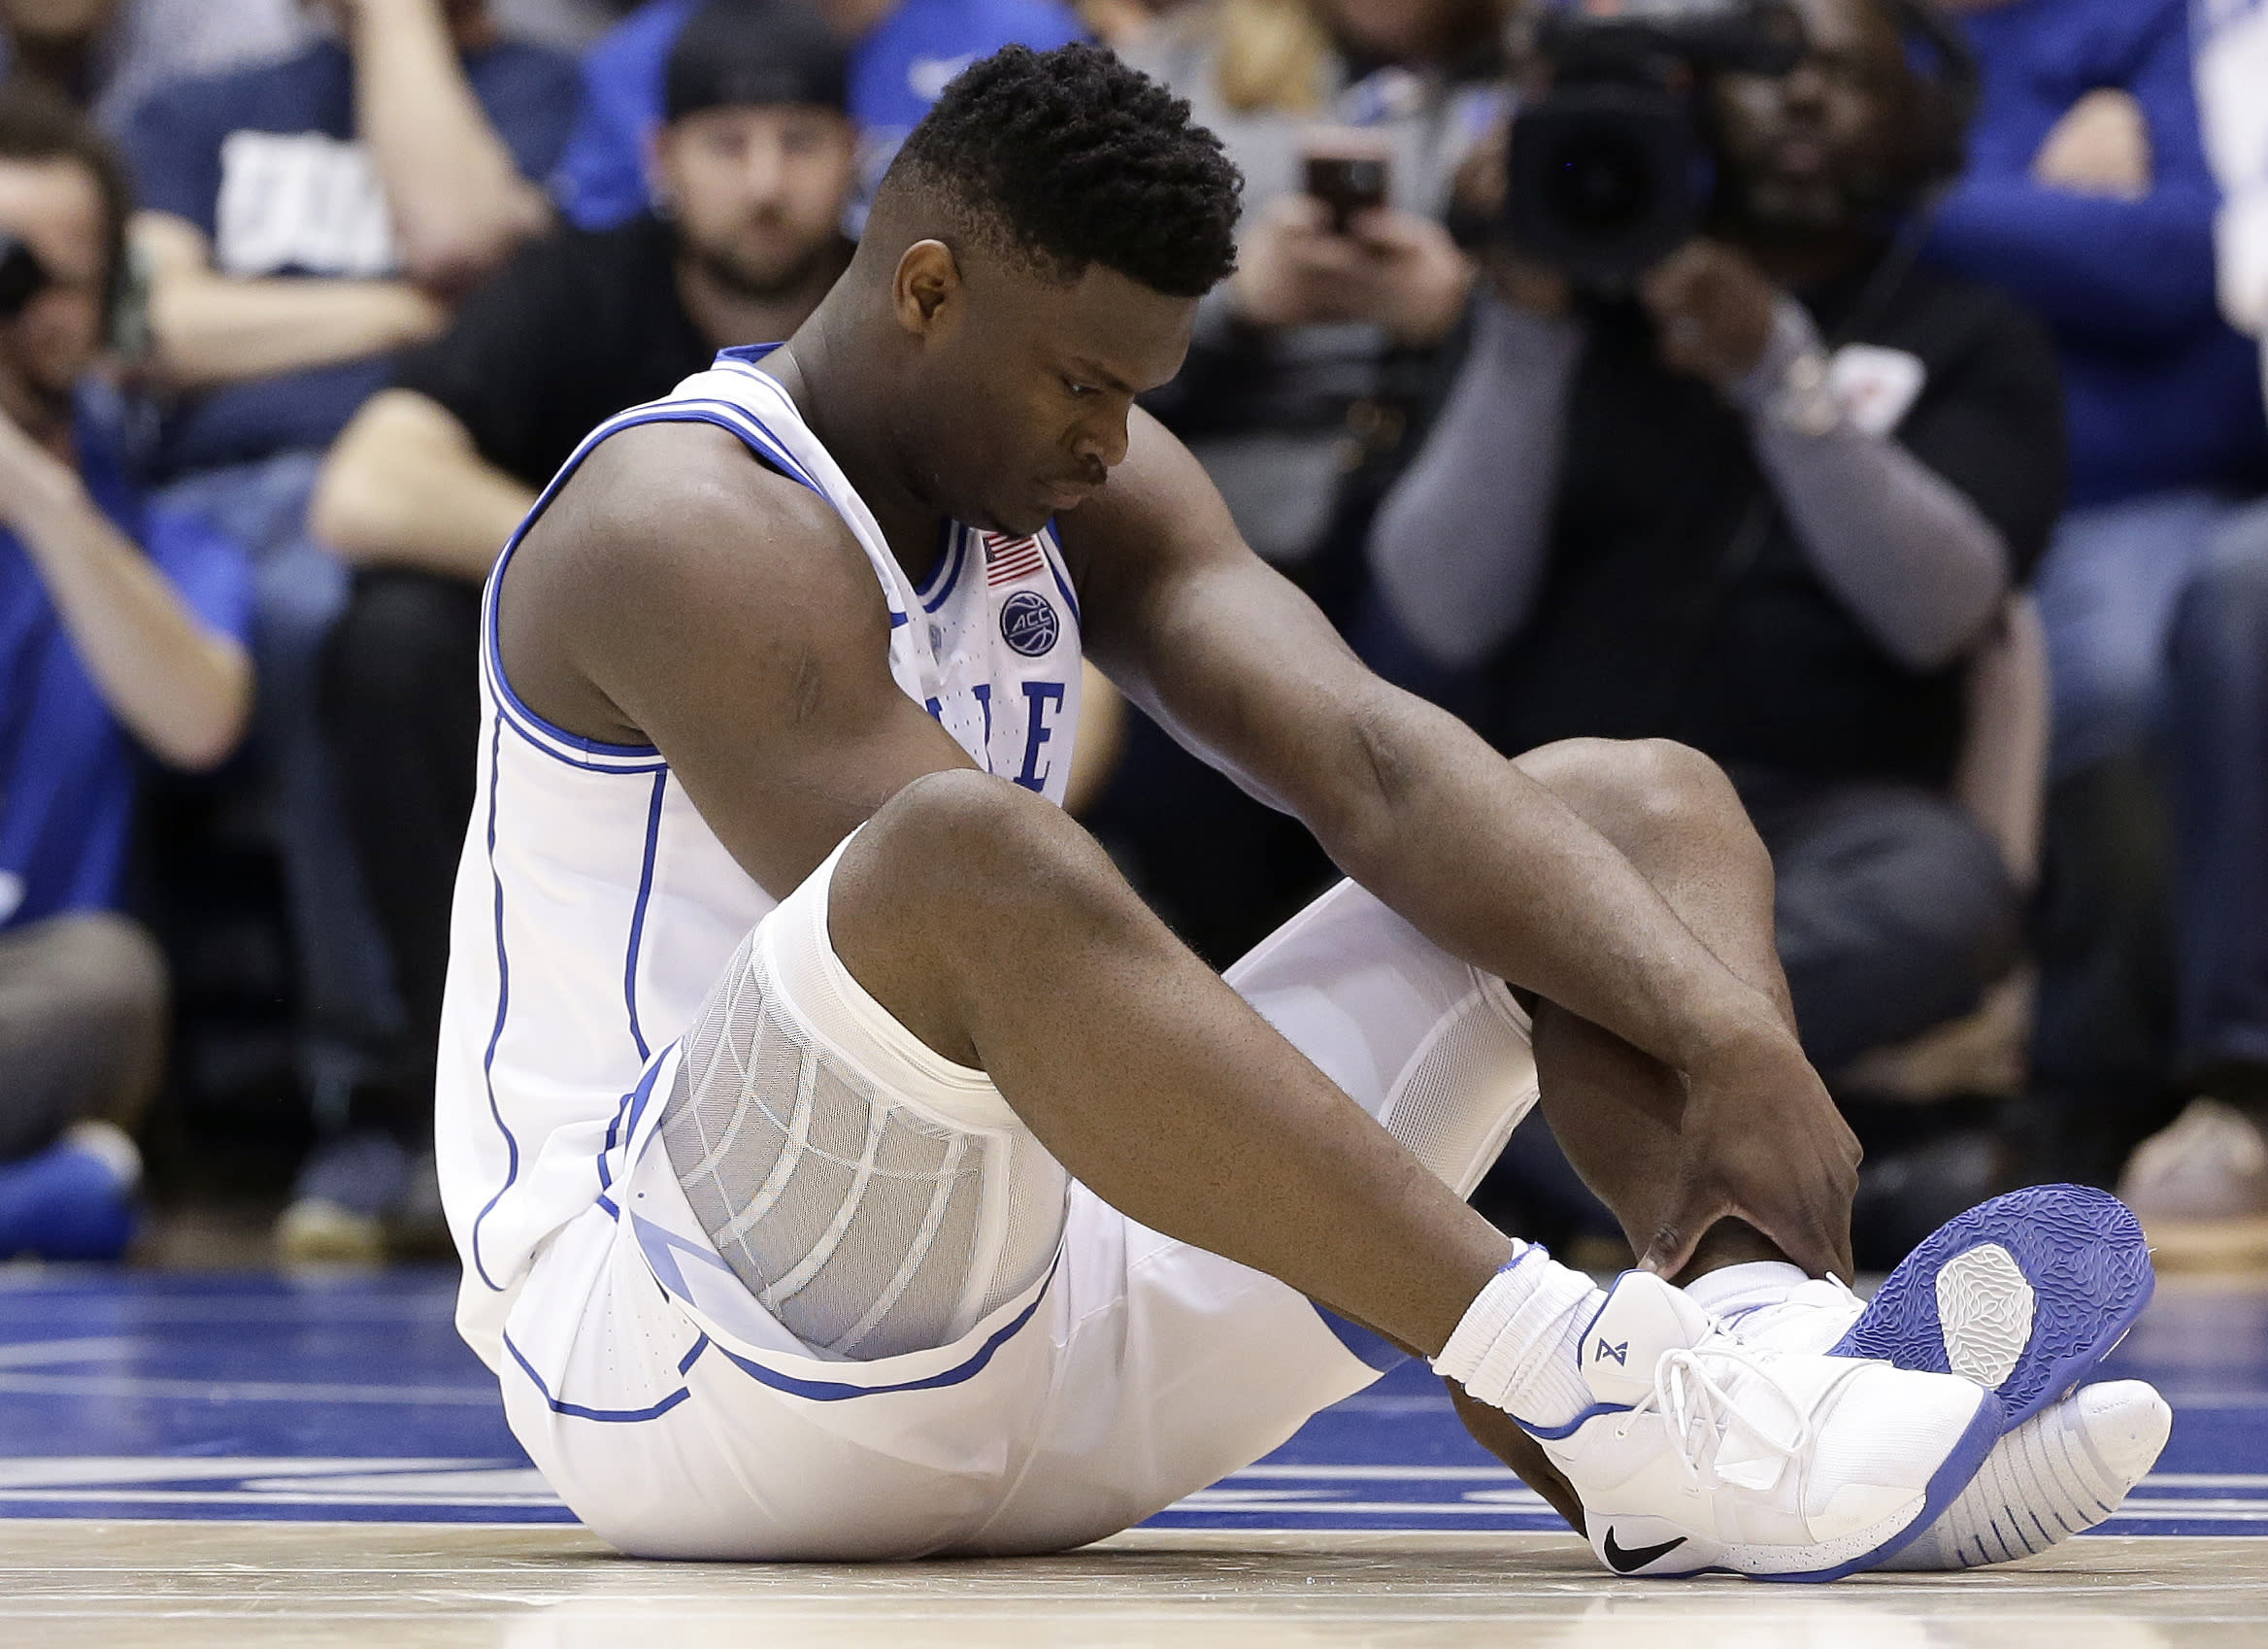 'They're going to show it until we die': How Zion Williamson's shoe mishap hurts Nike